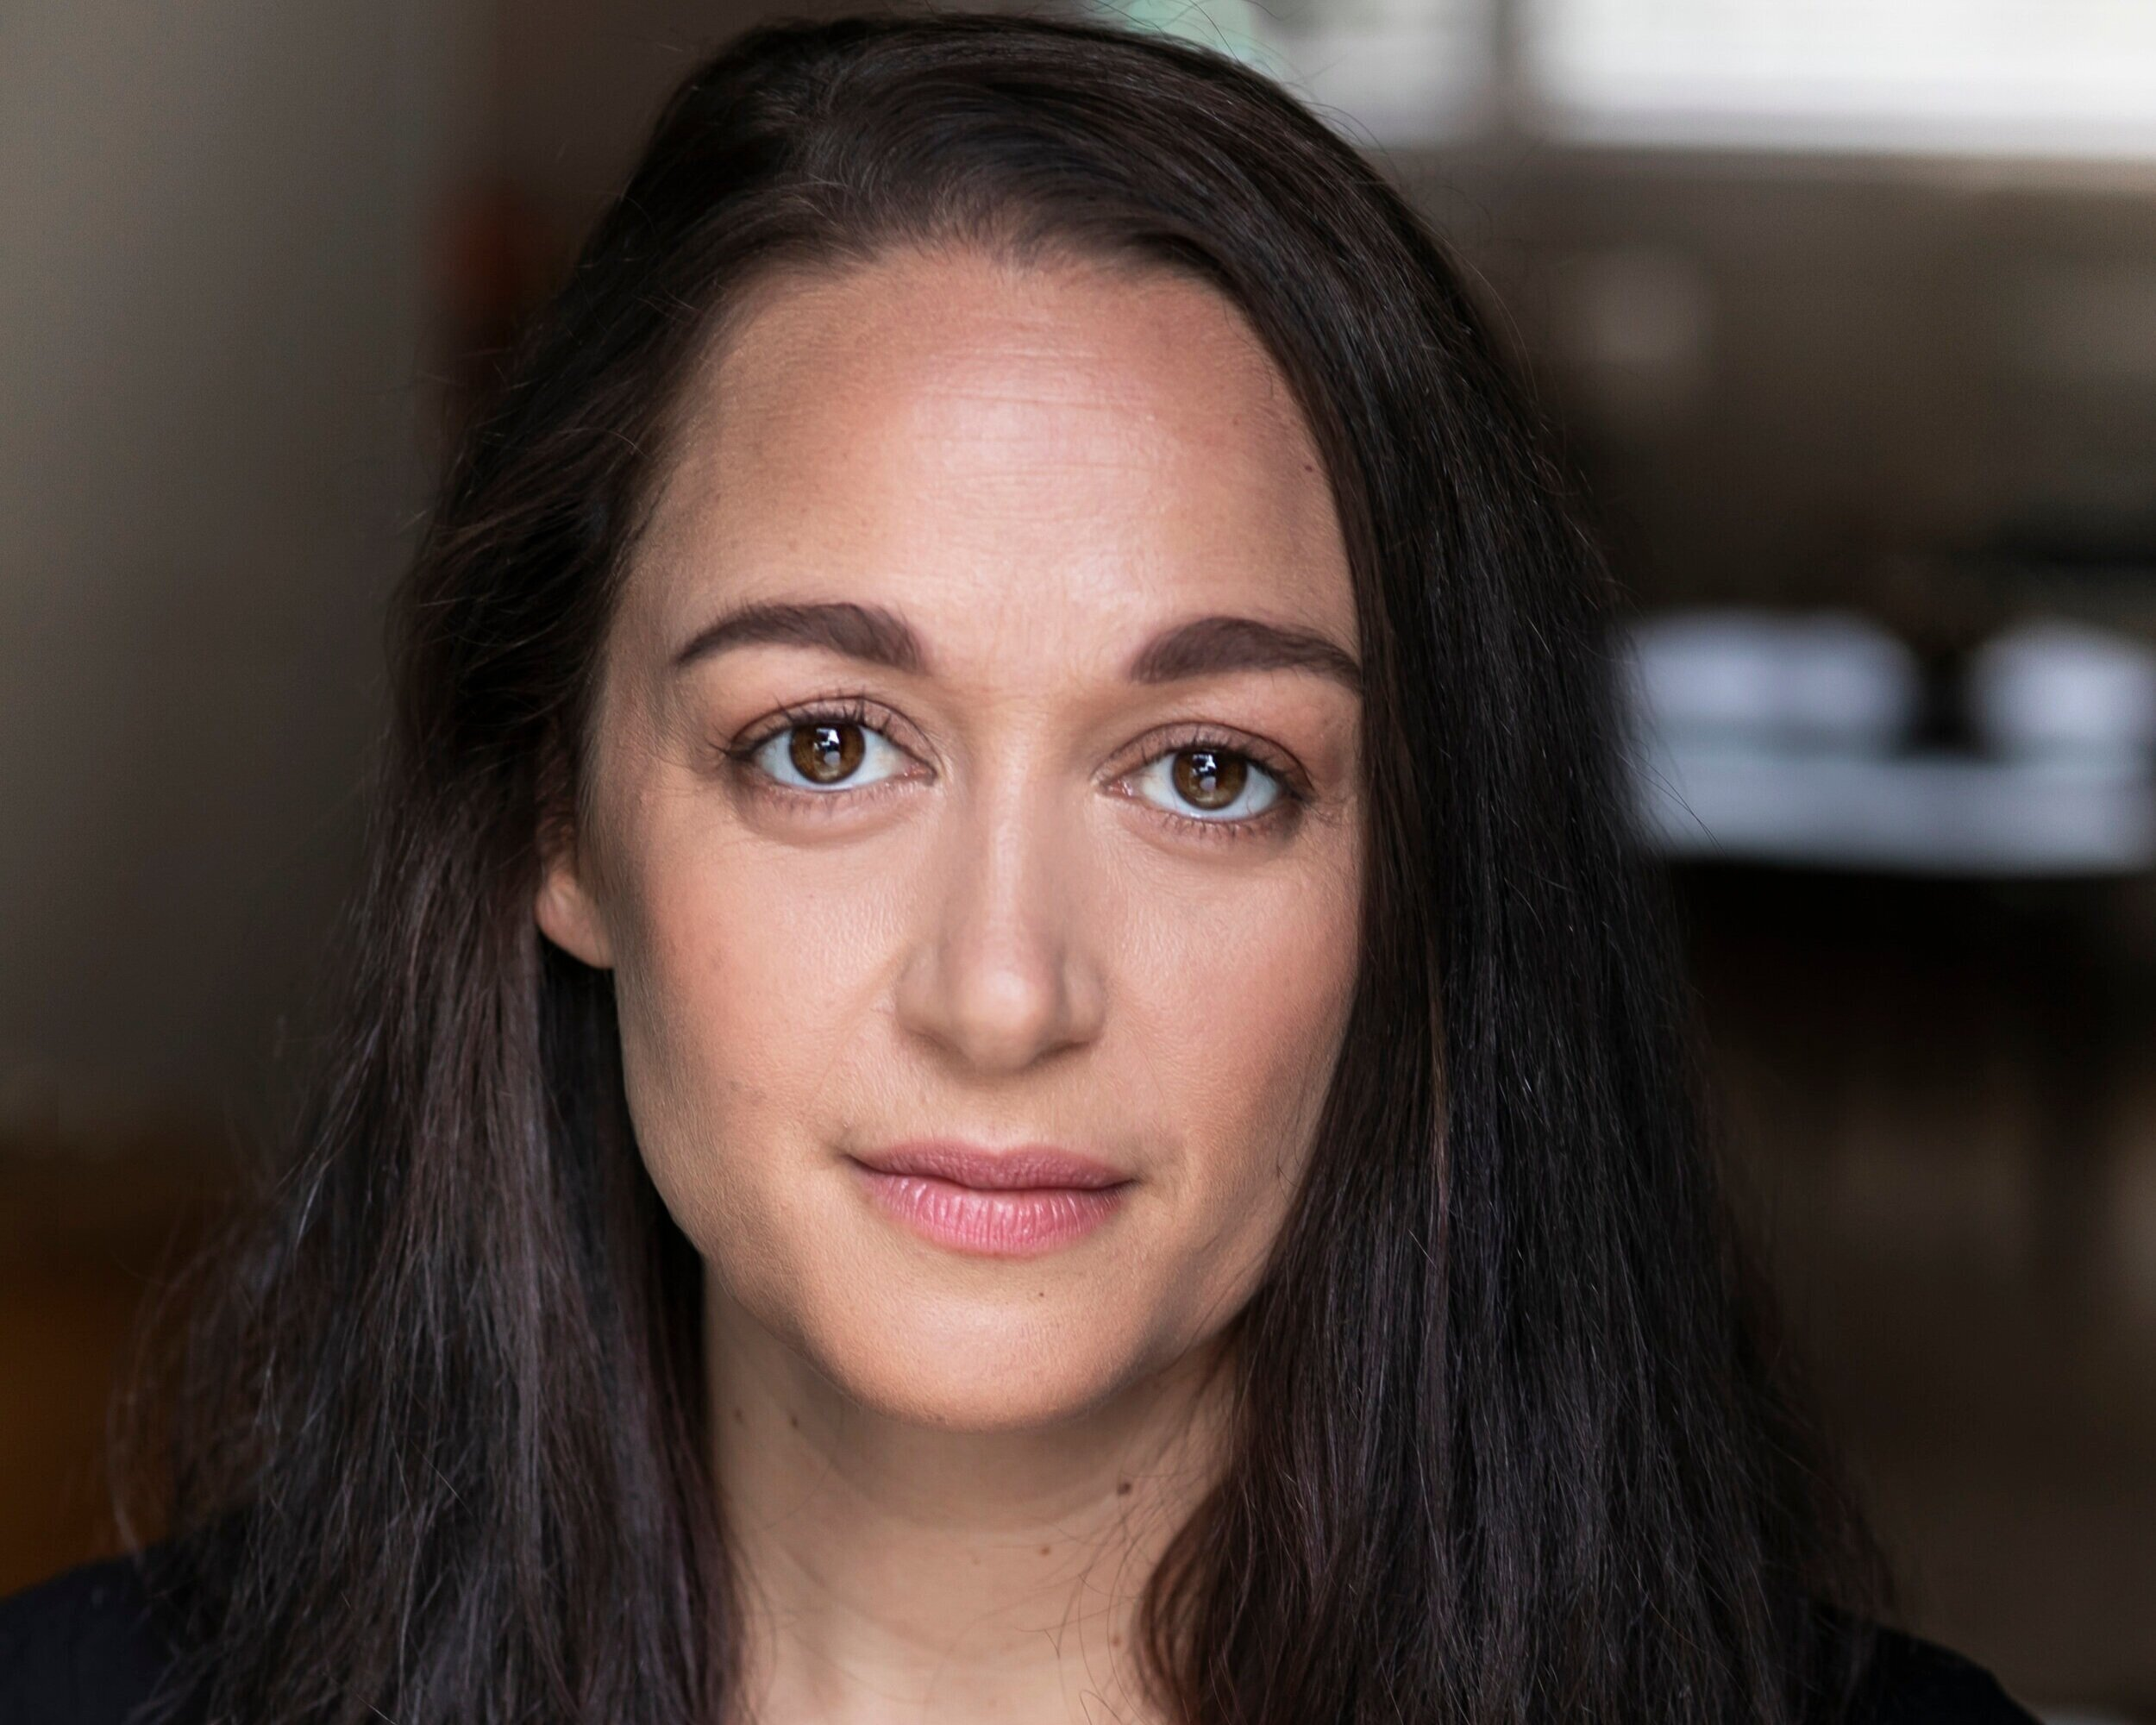 My Best Dead Friend - Co writer and performer - Anya Tate-Manning